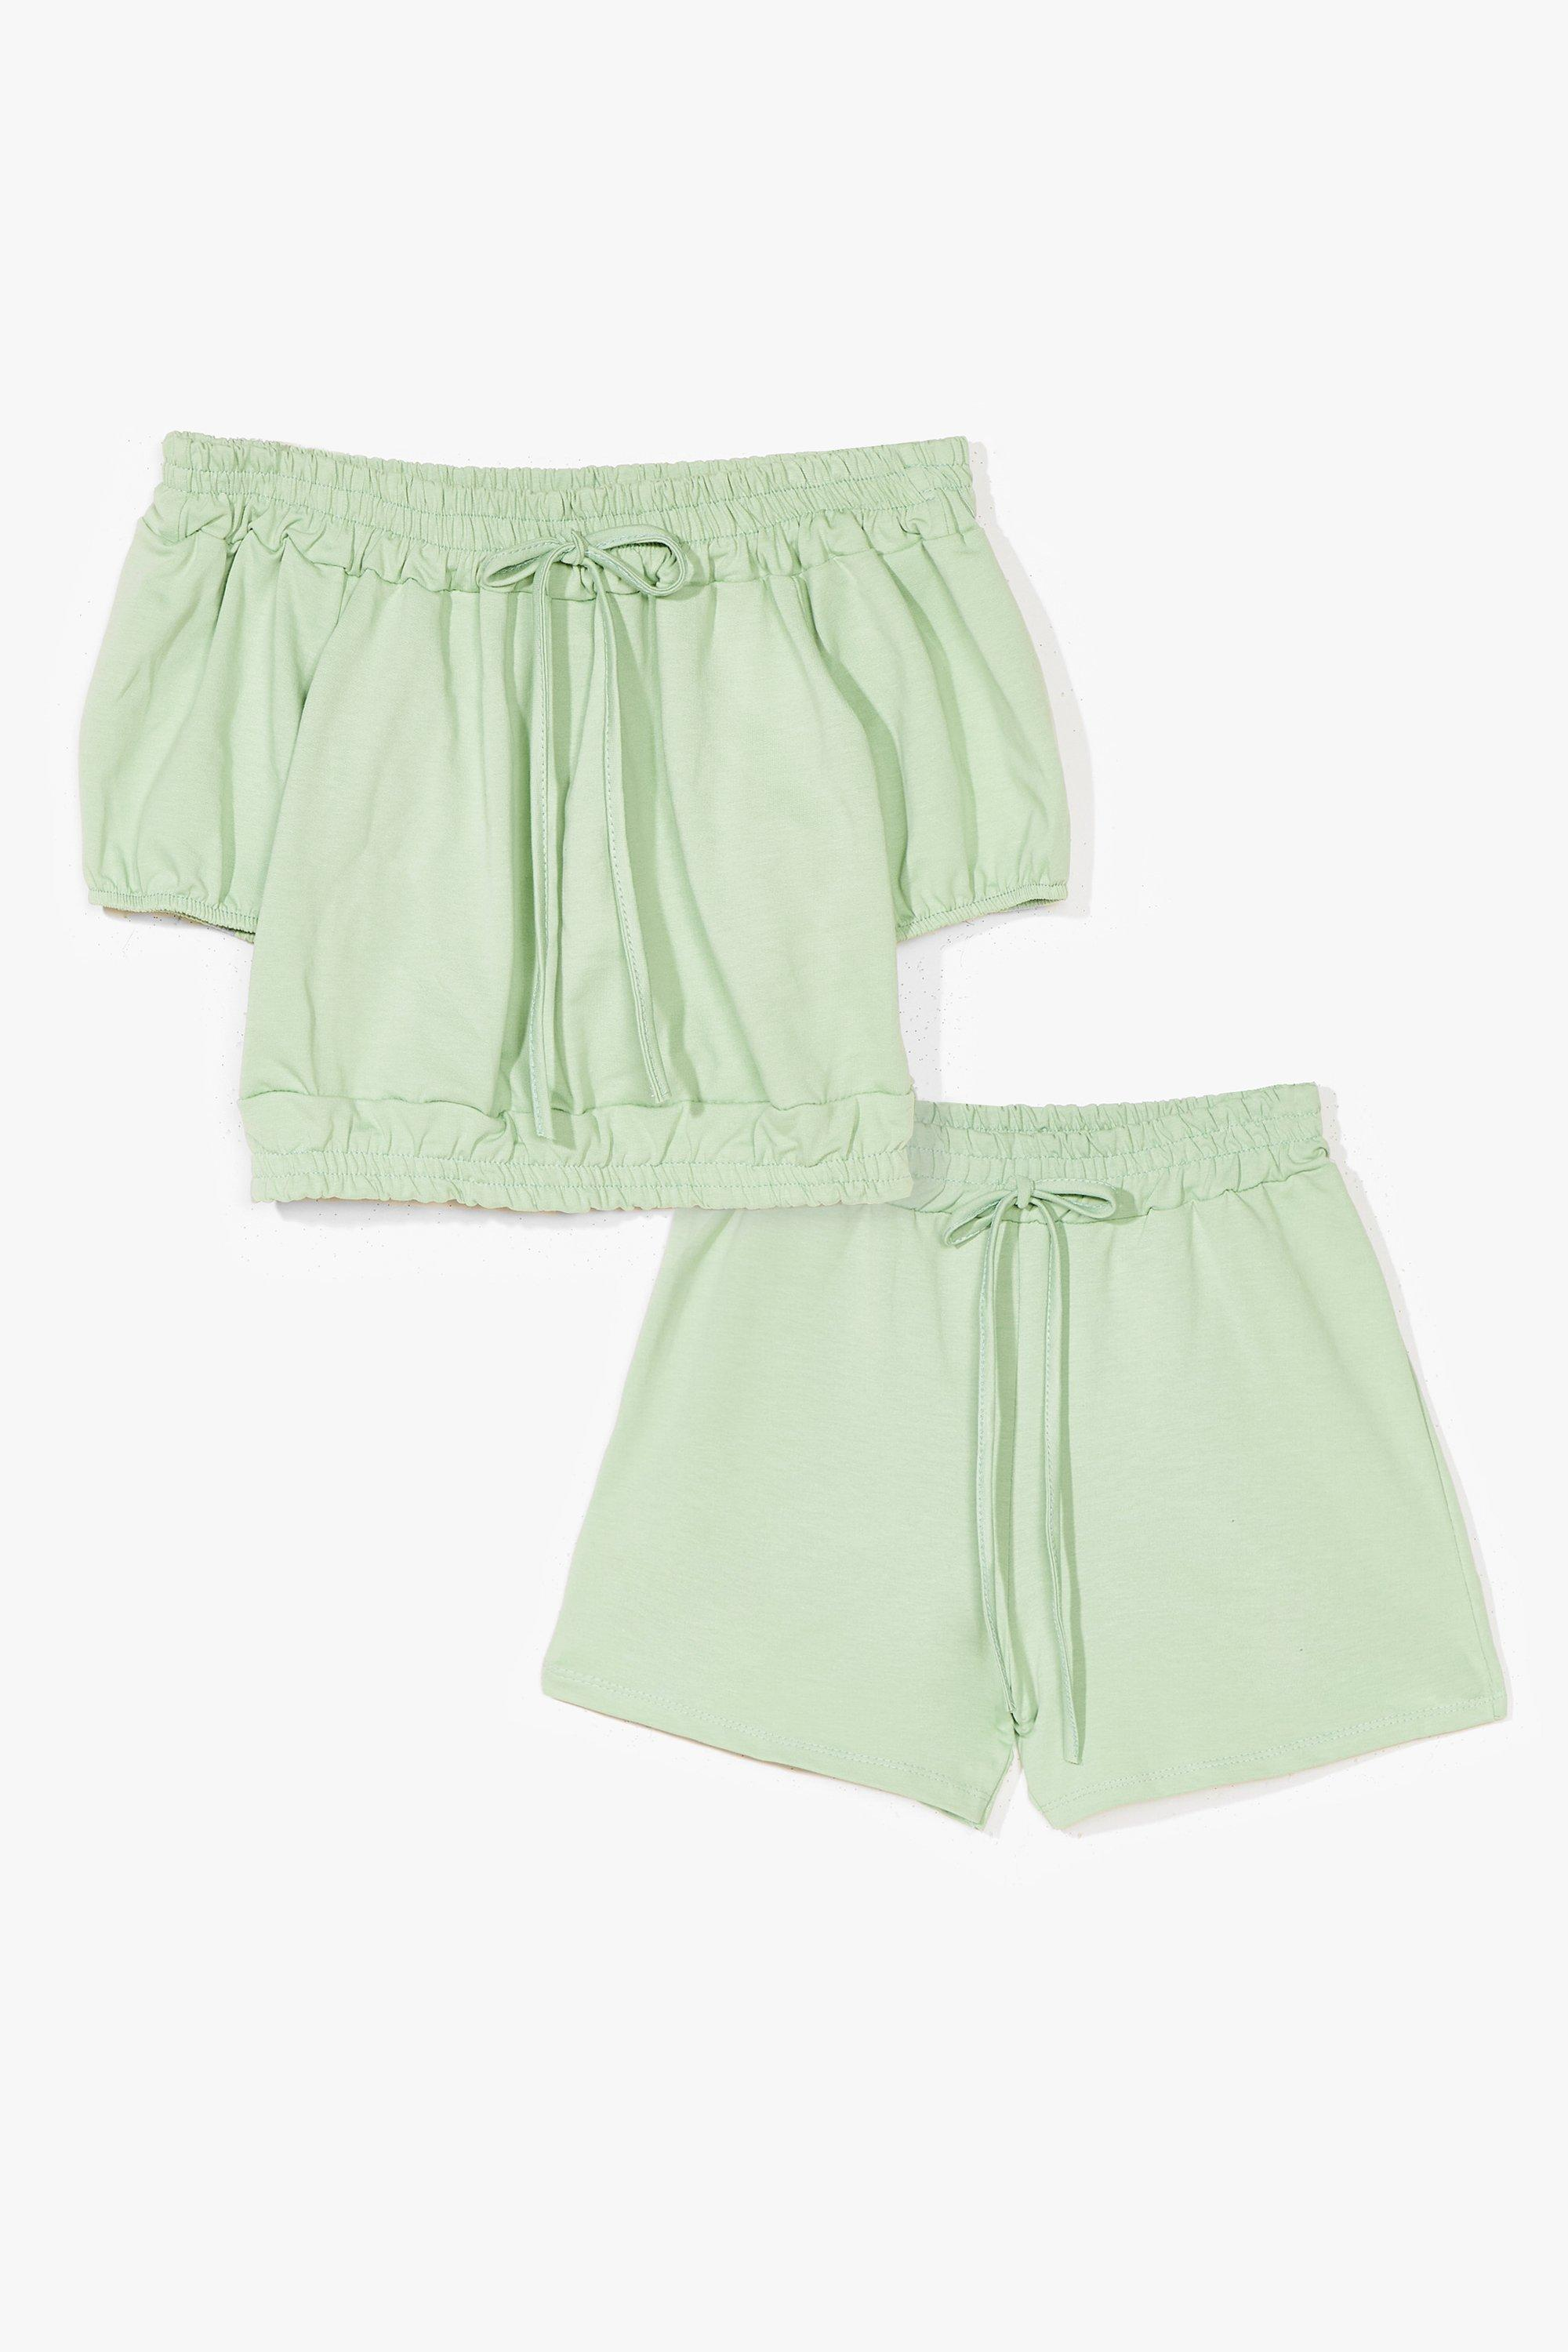 Image of Womens Day Off-the-Shoulder Crop Top and Shorts Set - Sage